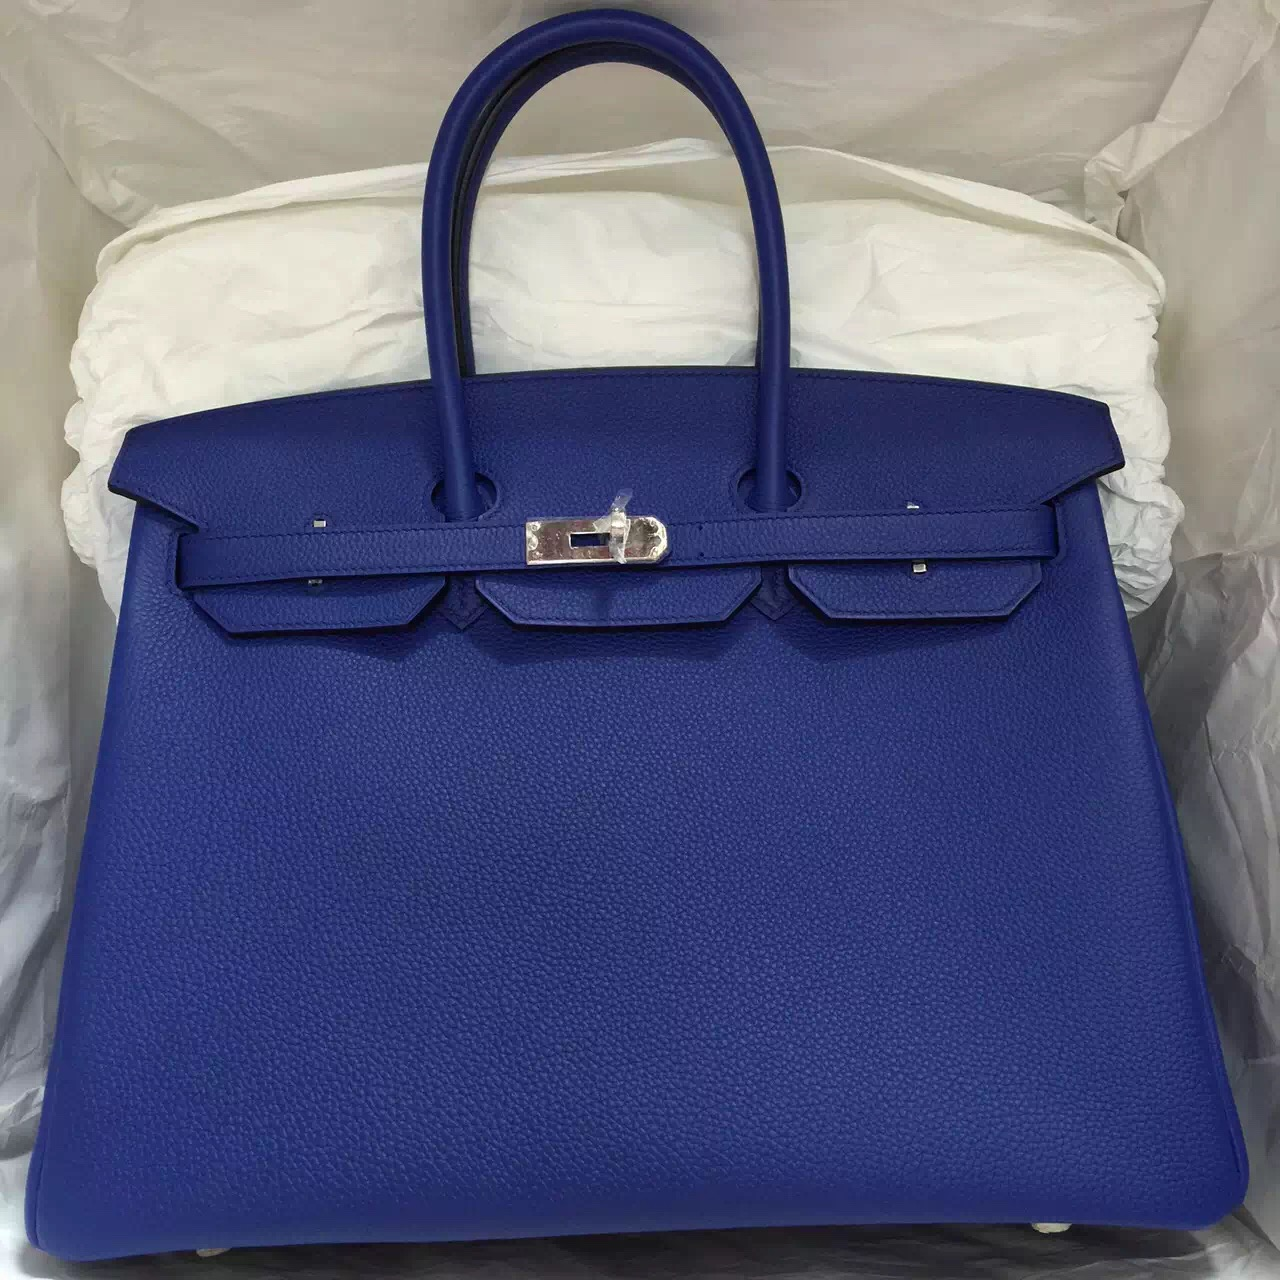 birkin knockof fhermes - Discount Hermes Togo Leather Birkin Bag in 7T Blue Electric Silver ...